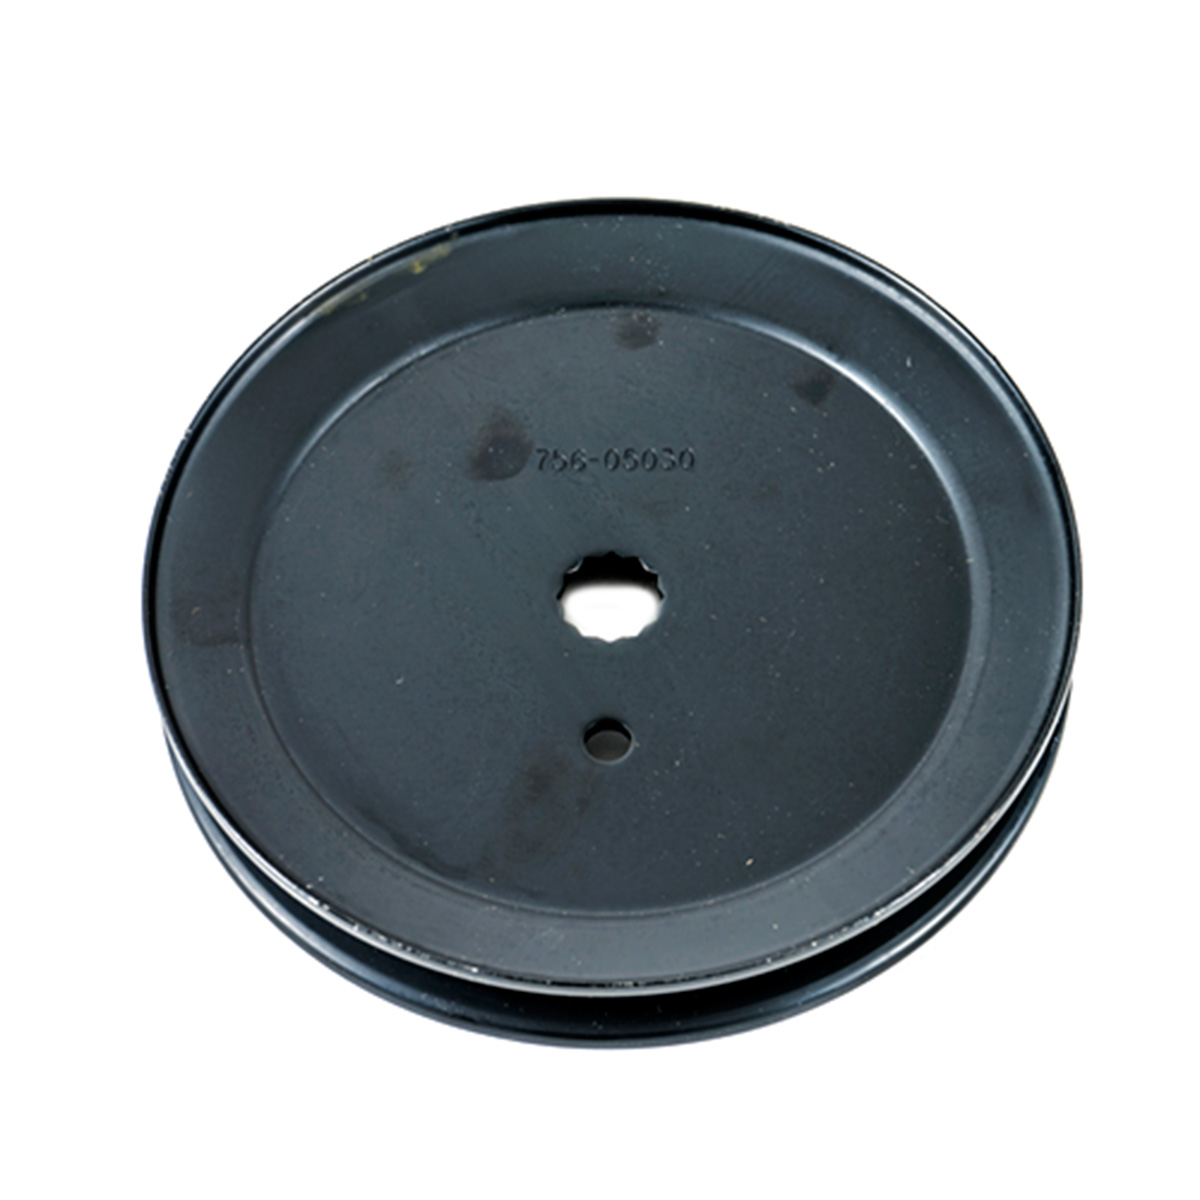 lawn mower pulley-deck 6.74 inch 756-05030